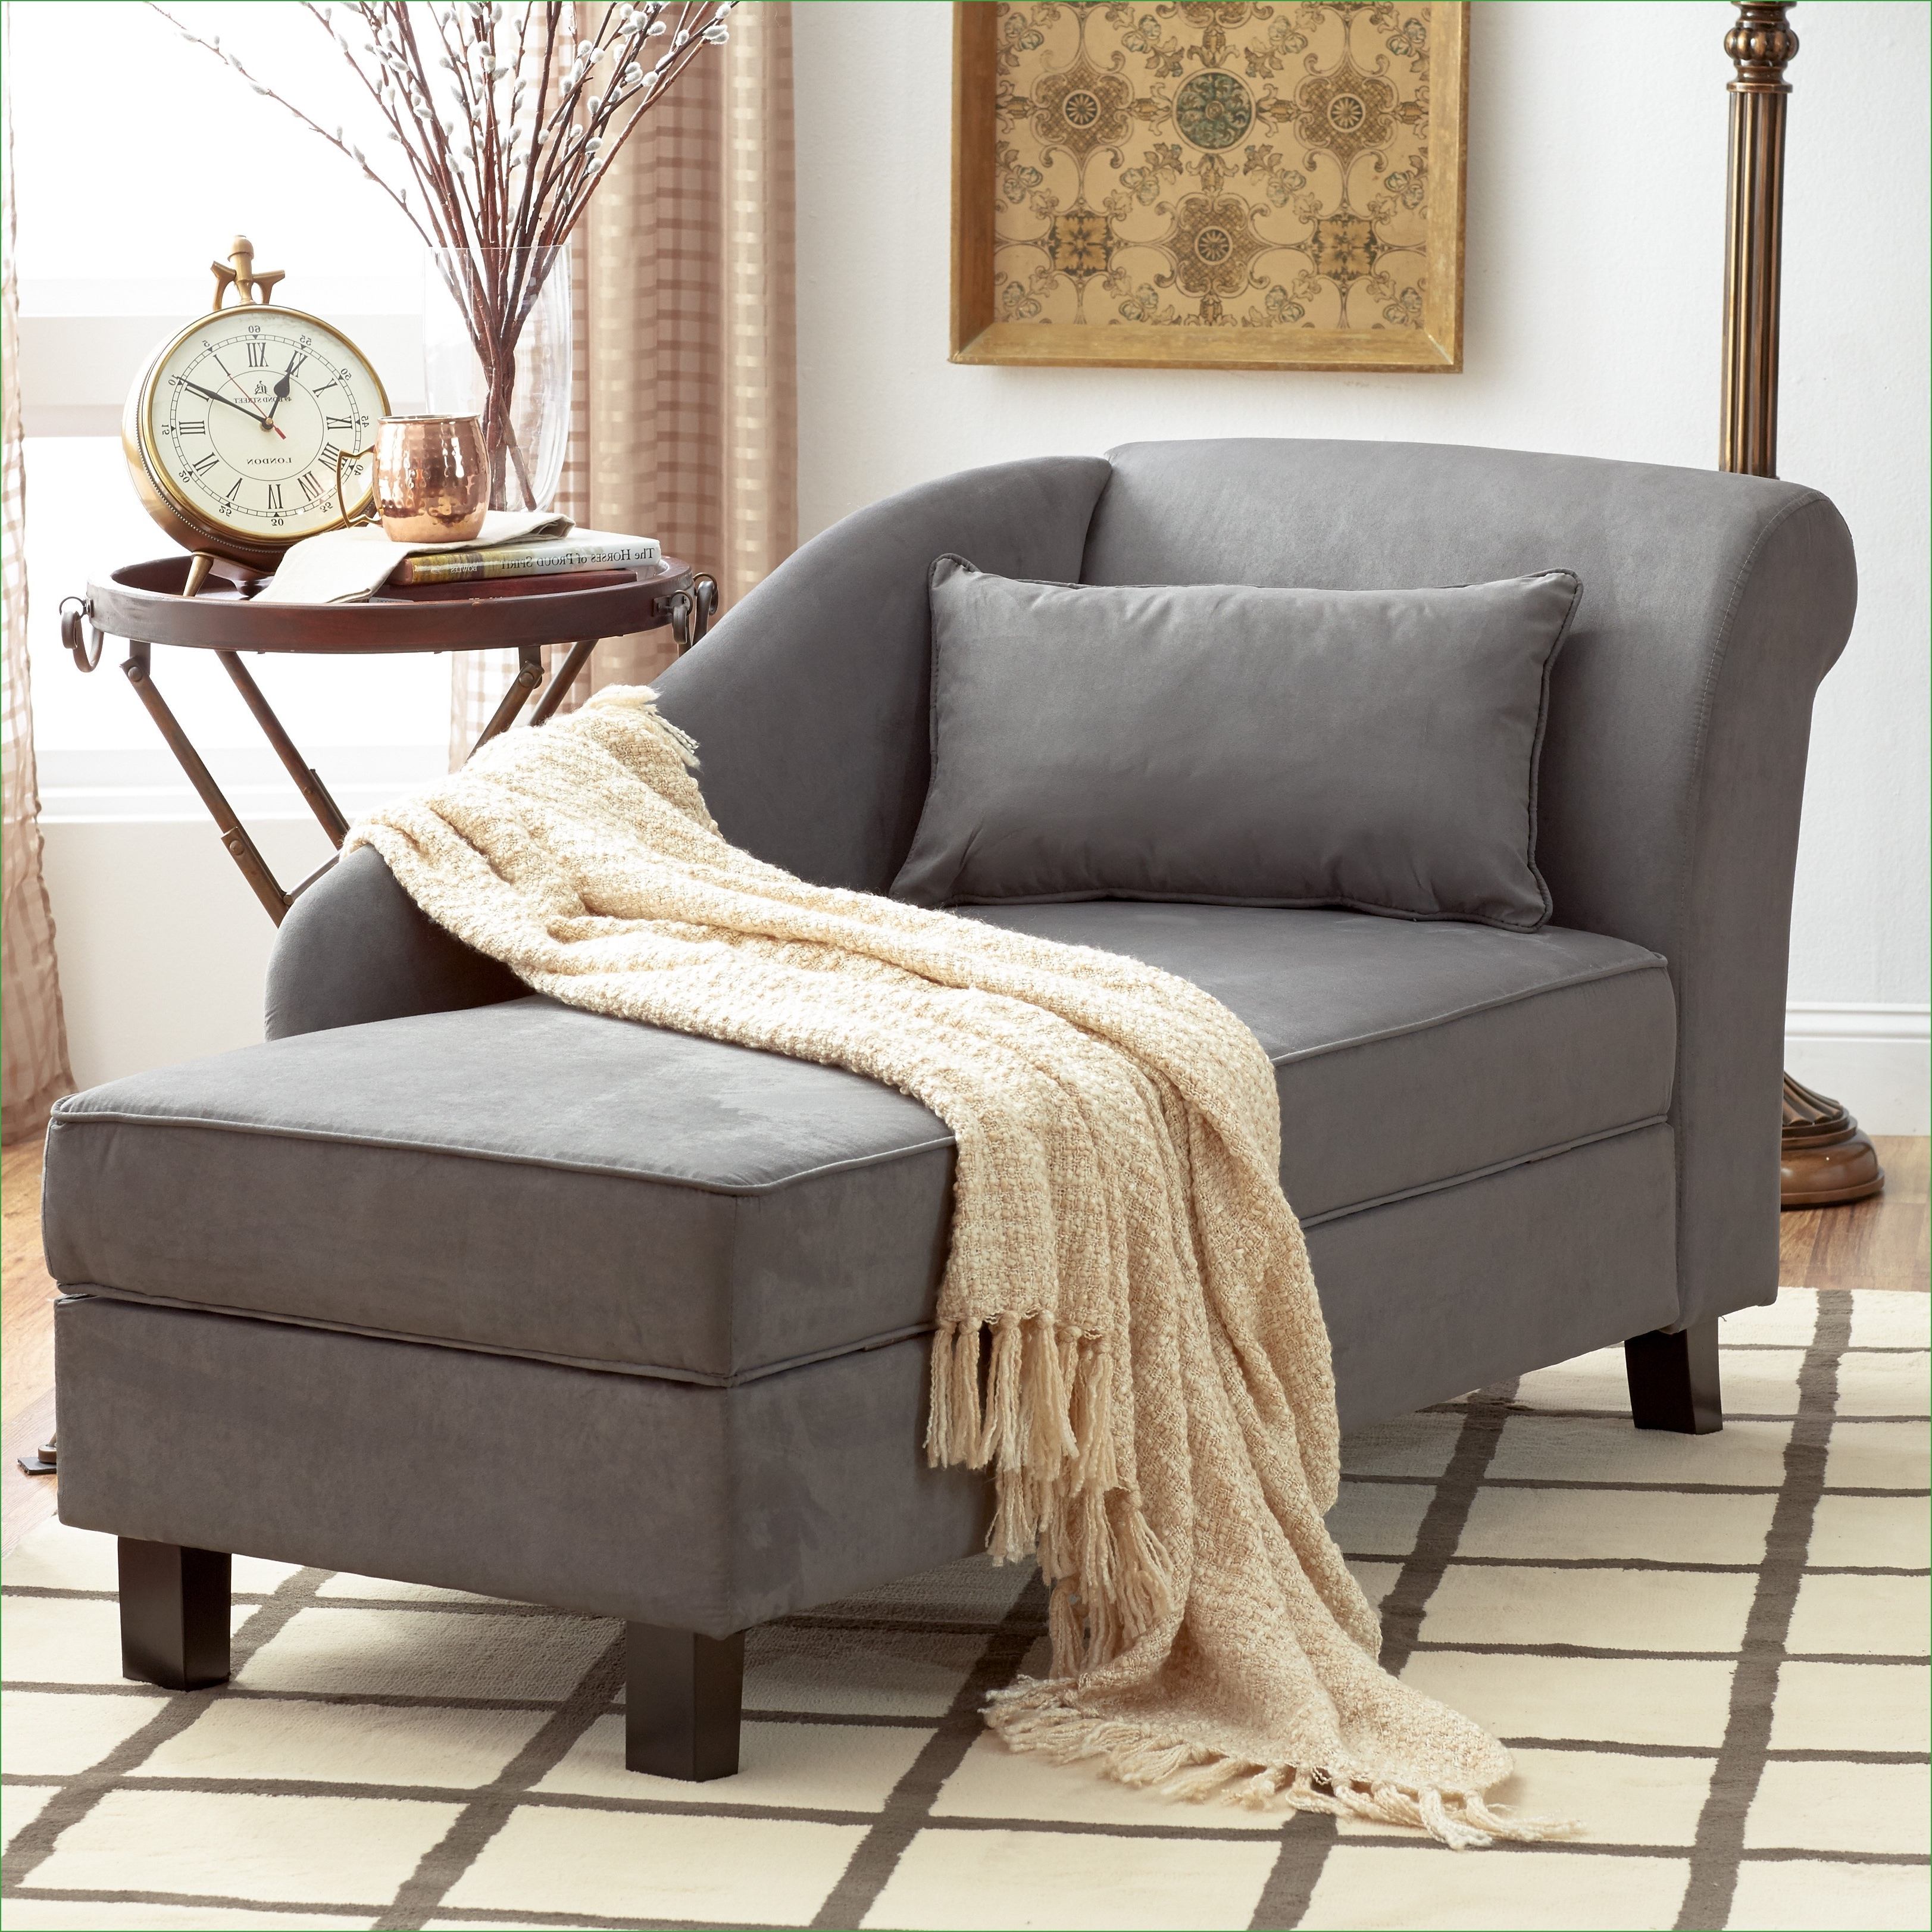 Extra Wide Chaise Lounges Regarding Current Lounge Chair For Small Room • Lounge Chairs Ideas (View 5 of 15)